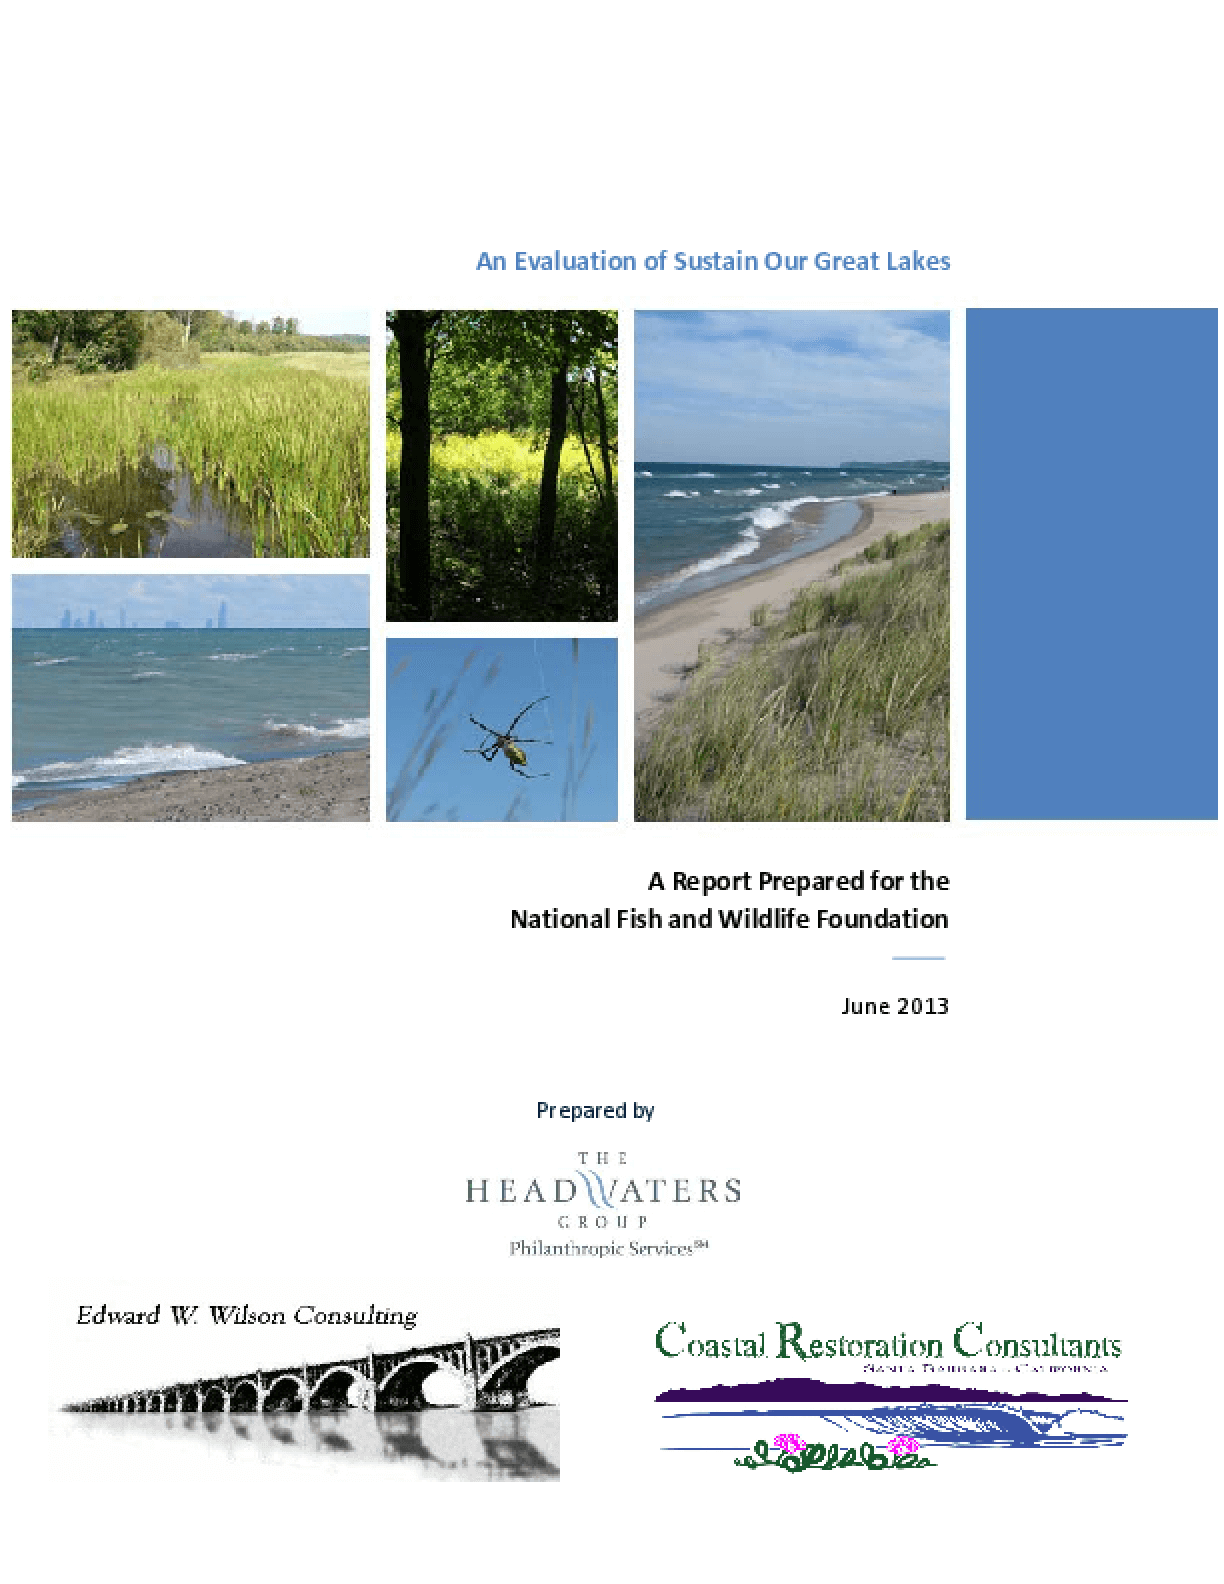 An Evaluation of Sustain Our Great Lakes: A Report Prepared for the National Fish and Wildlife Foundation